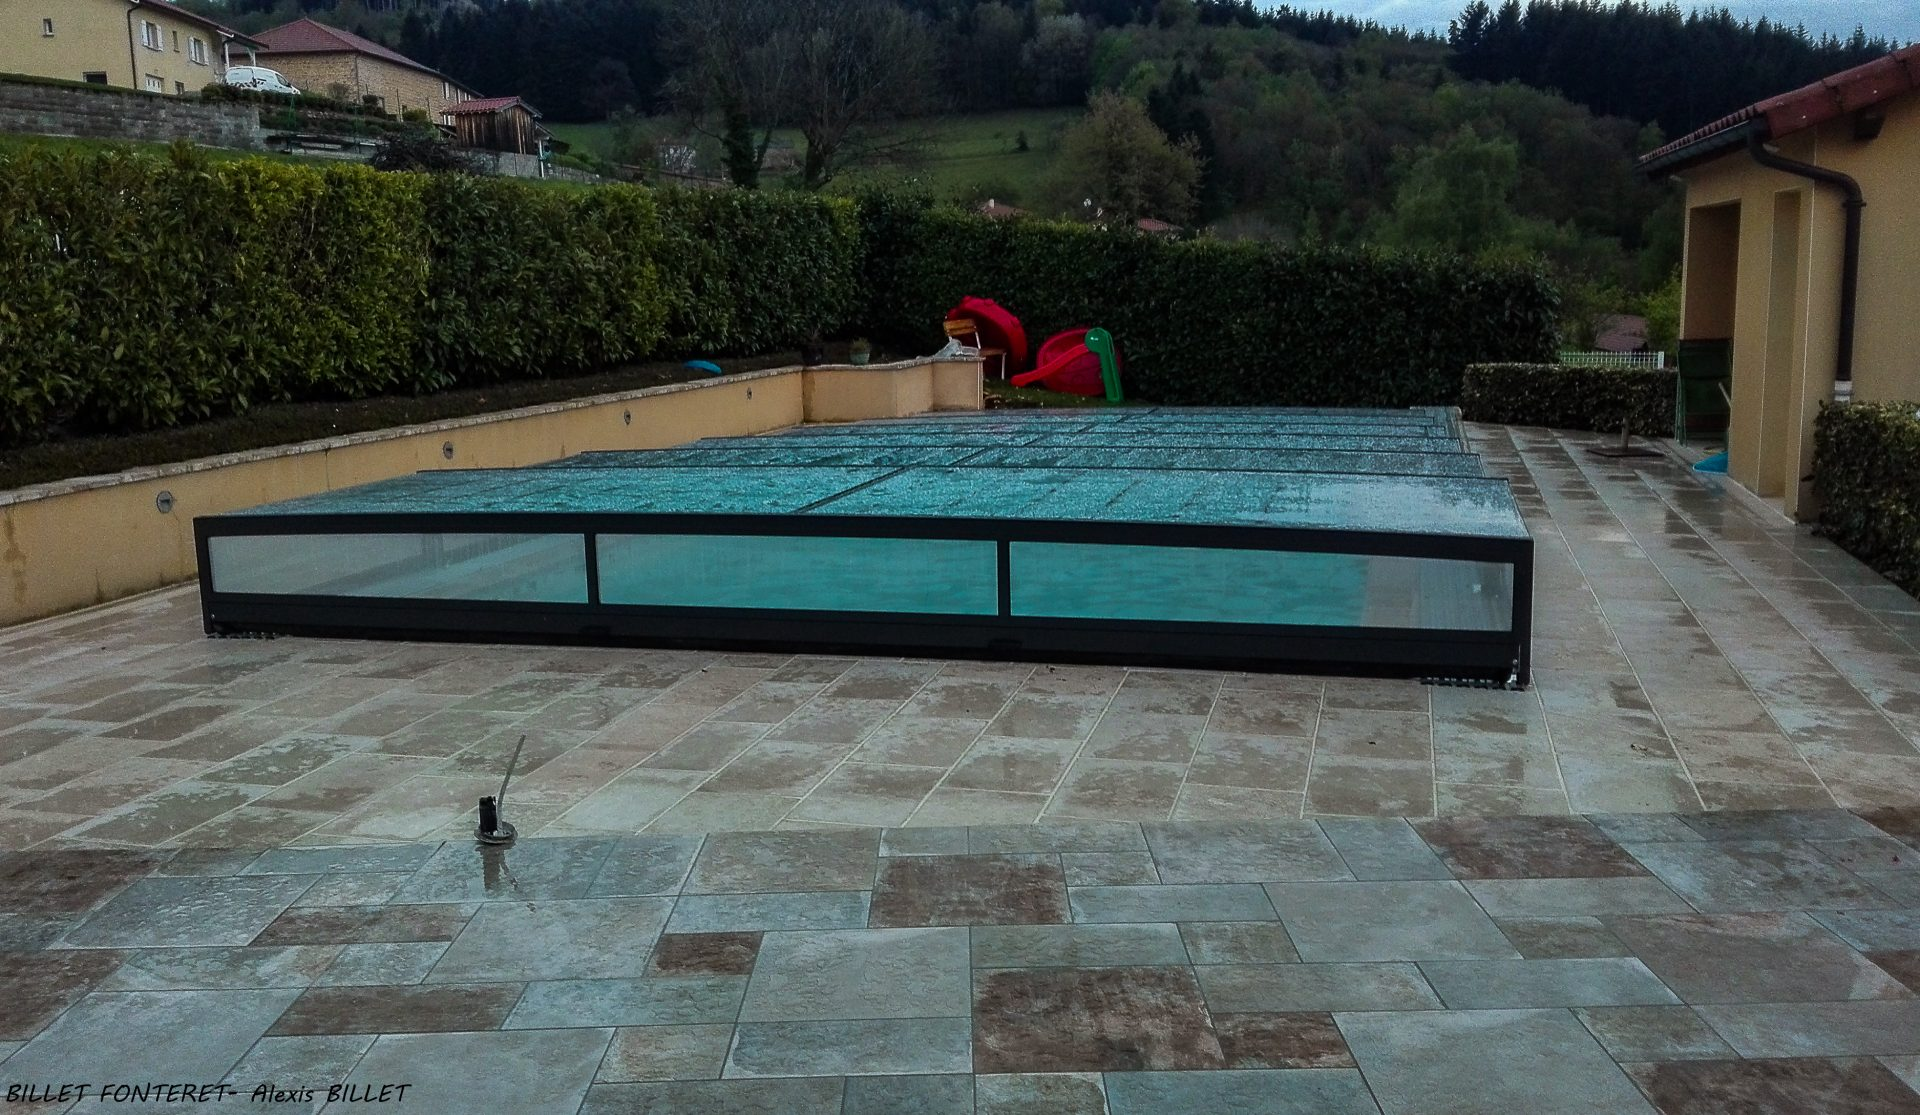 Projet piscine billet fonteret for Reparation abri piscine